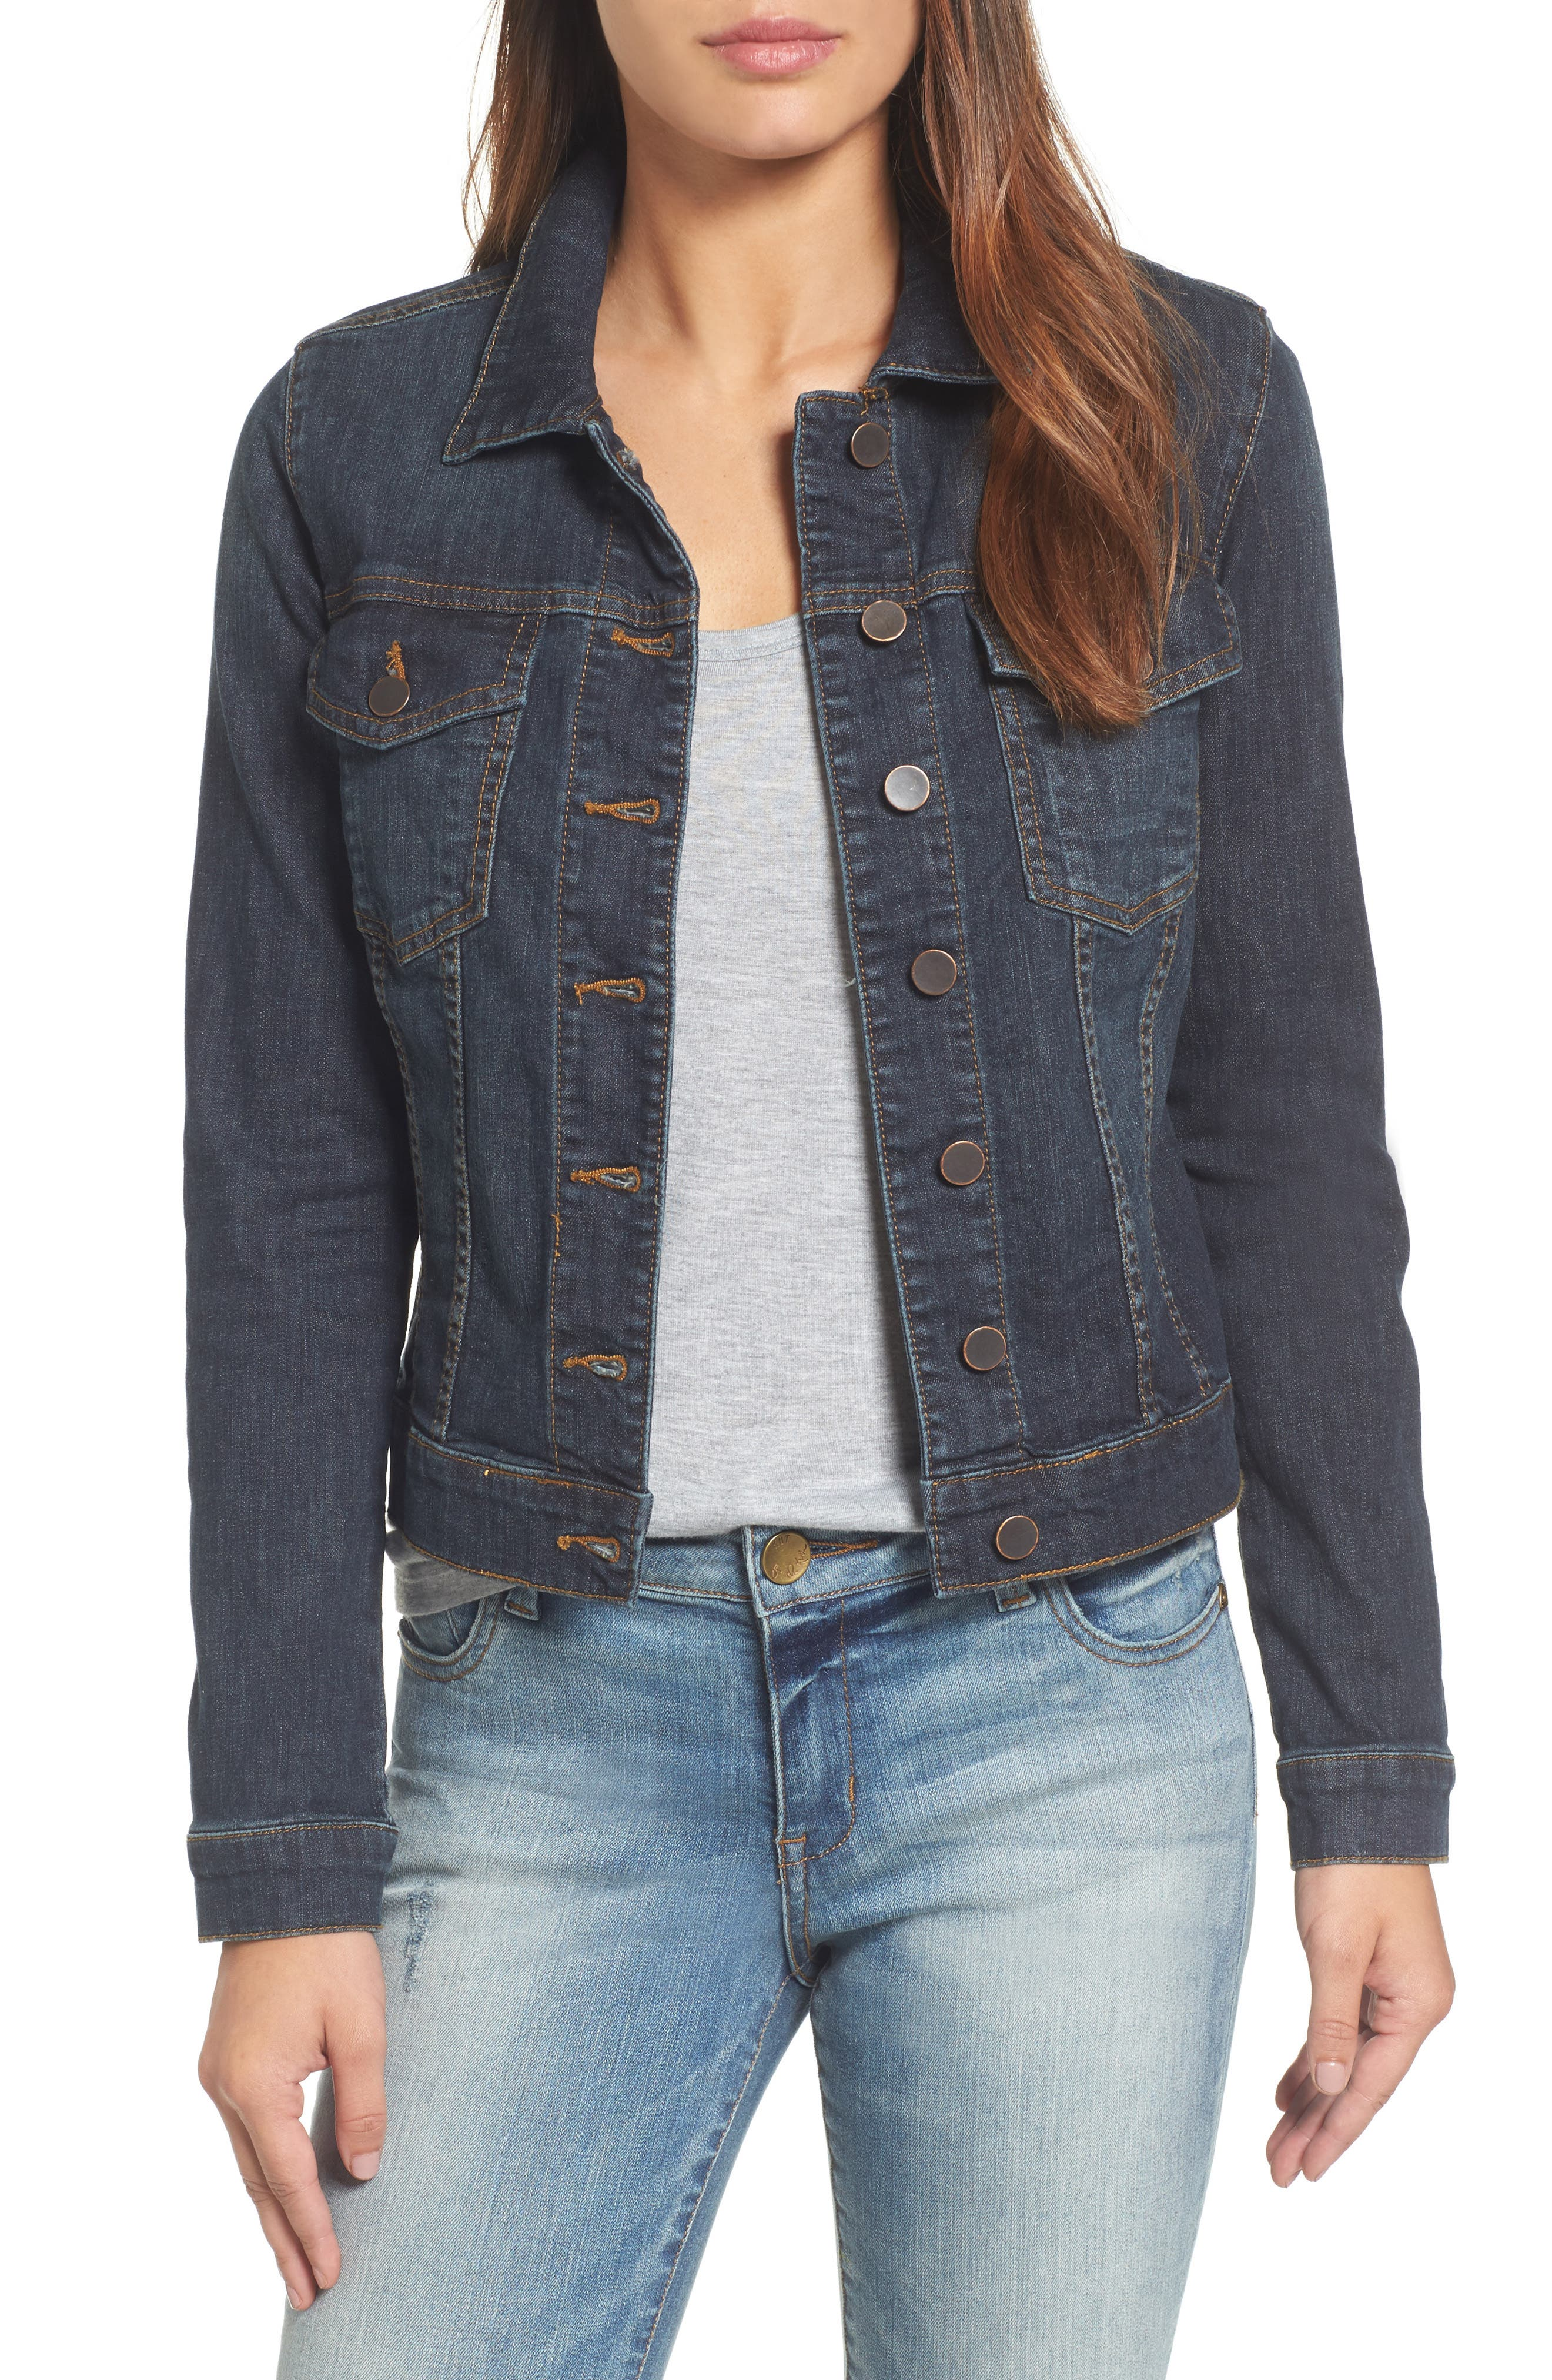 KUT FROM THE KLOTH 'Helena' Denim Jacket, Main, color, GRATITUDE